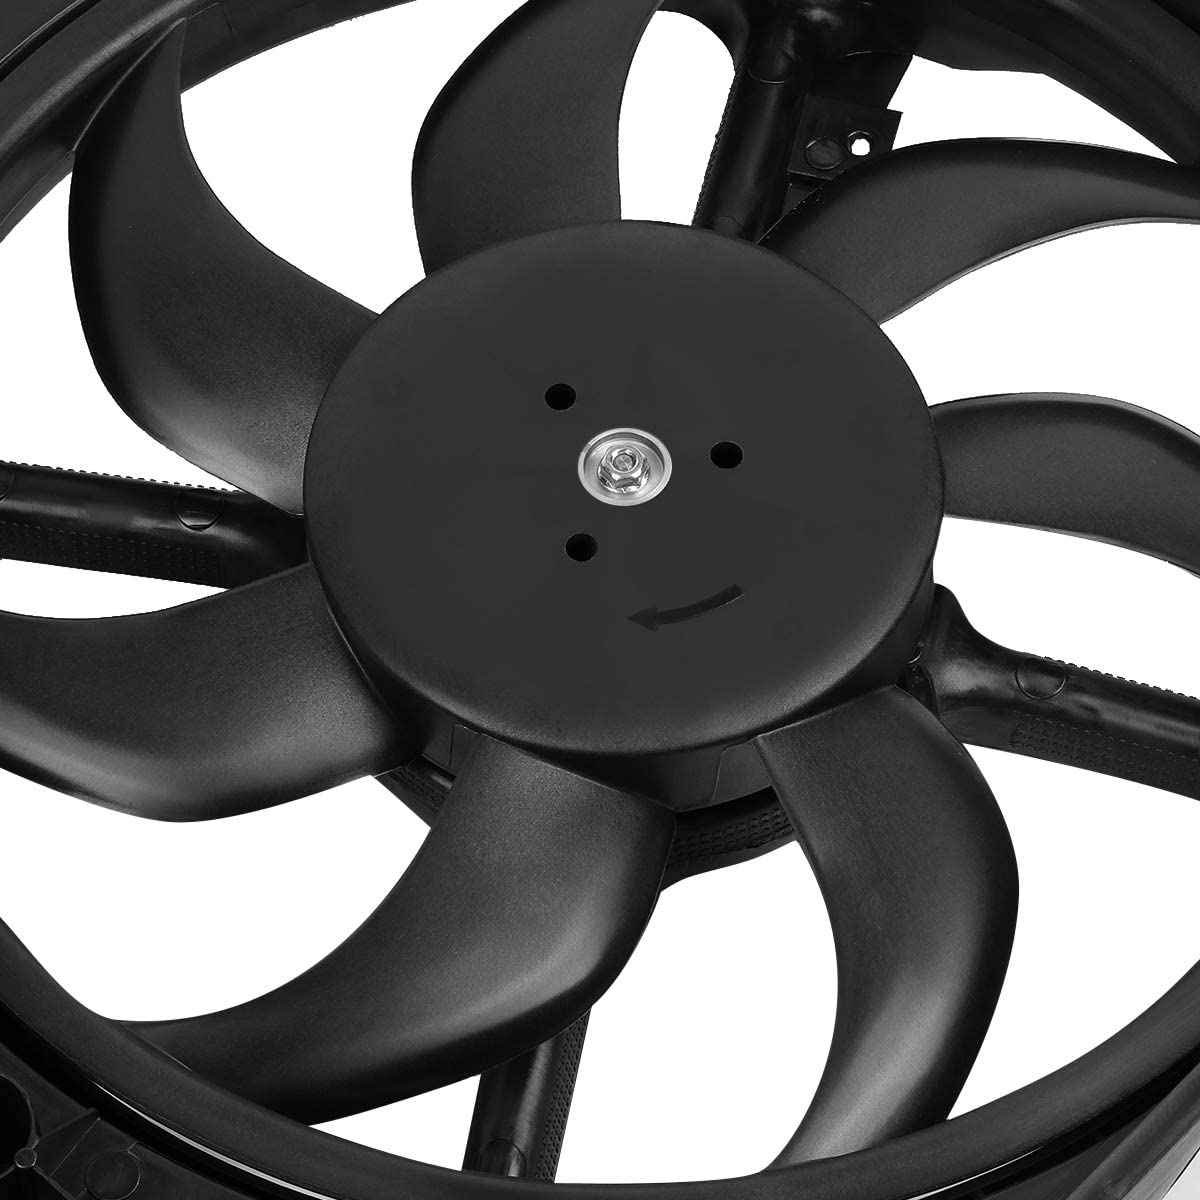 CH3115189 OE Style Radiator Cooling Fan Assembly Replacement for Ram Promaster 1500 2500 3500 3.0L 3.6L Turbo 14-18